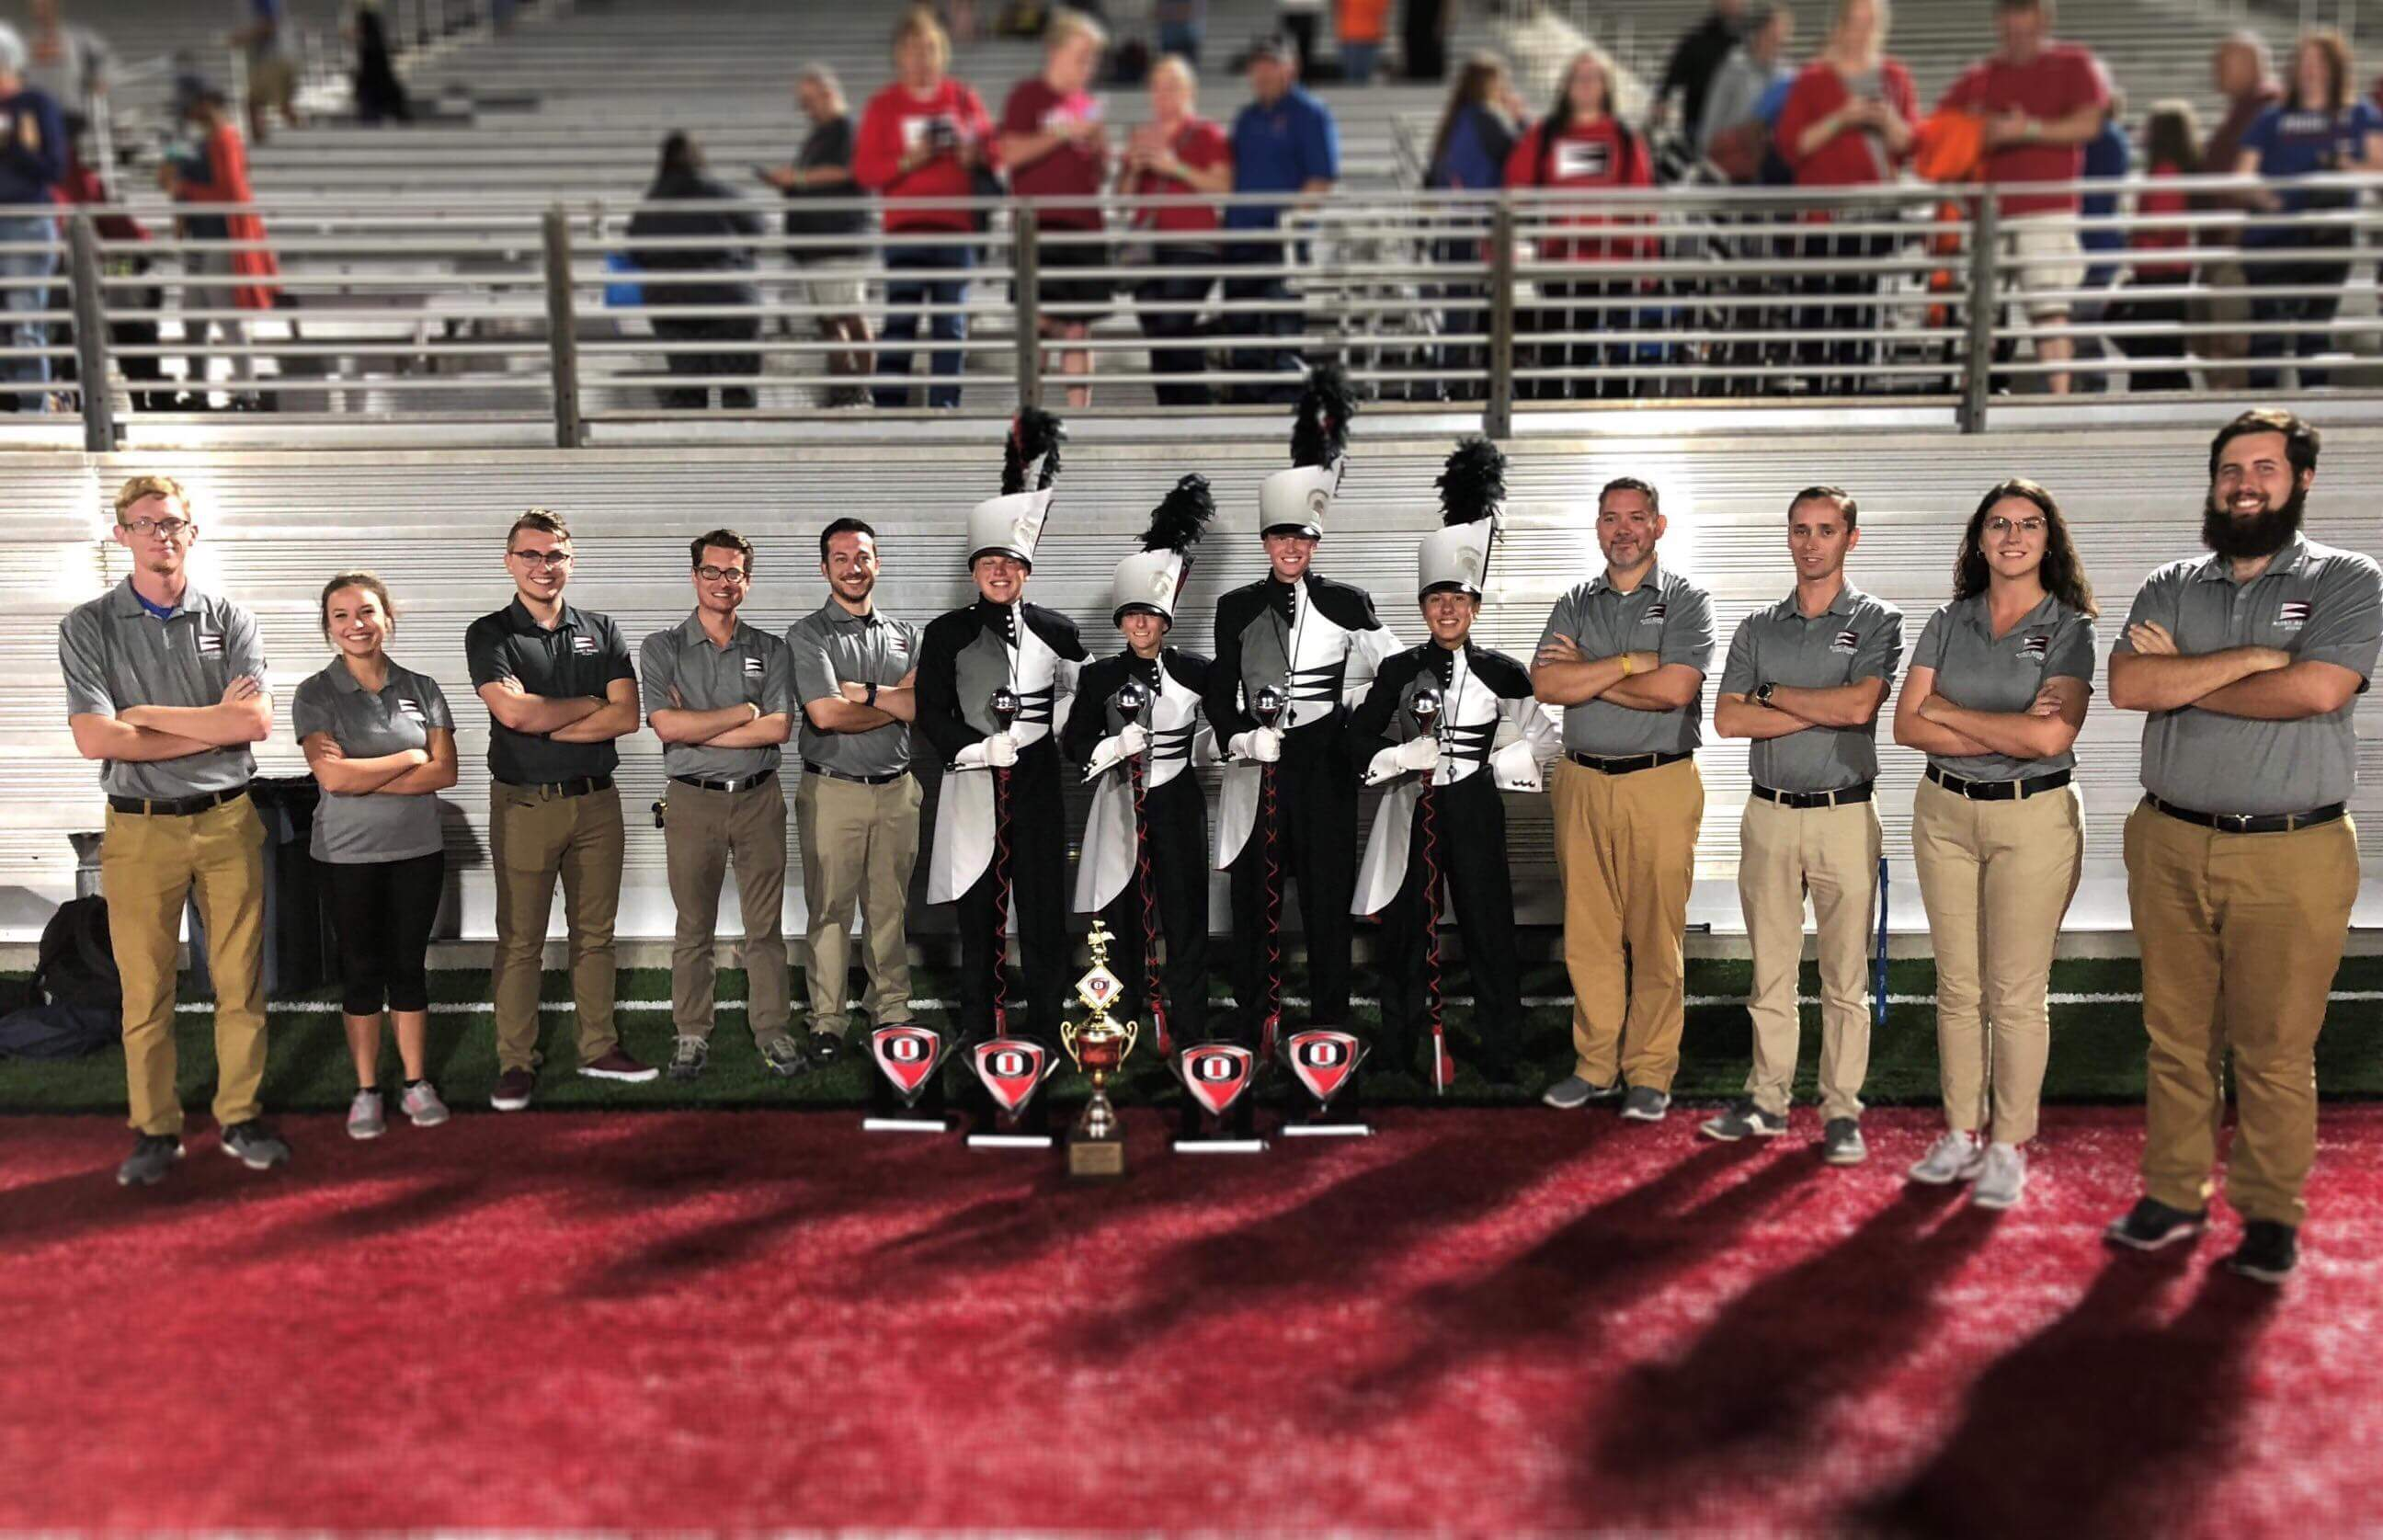 2018 Owasso Invitational Grand Champion Awards